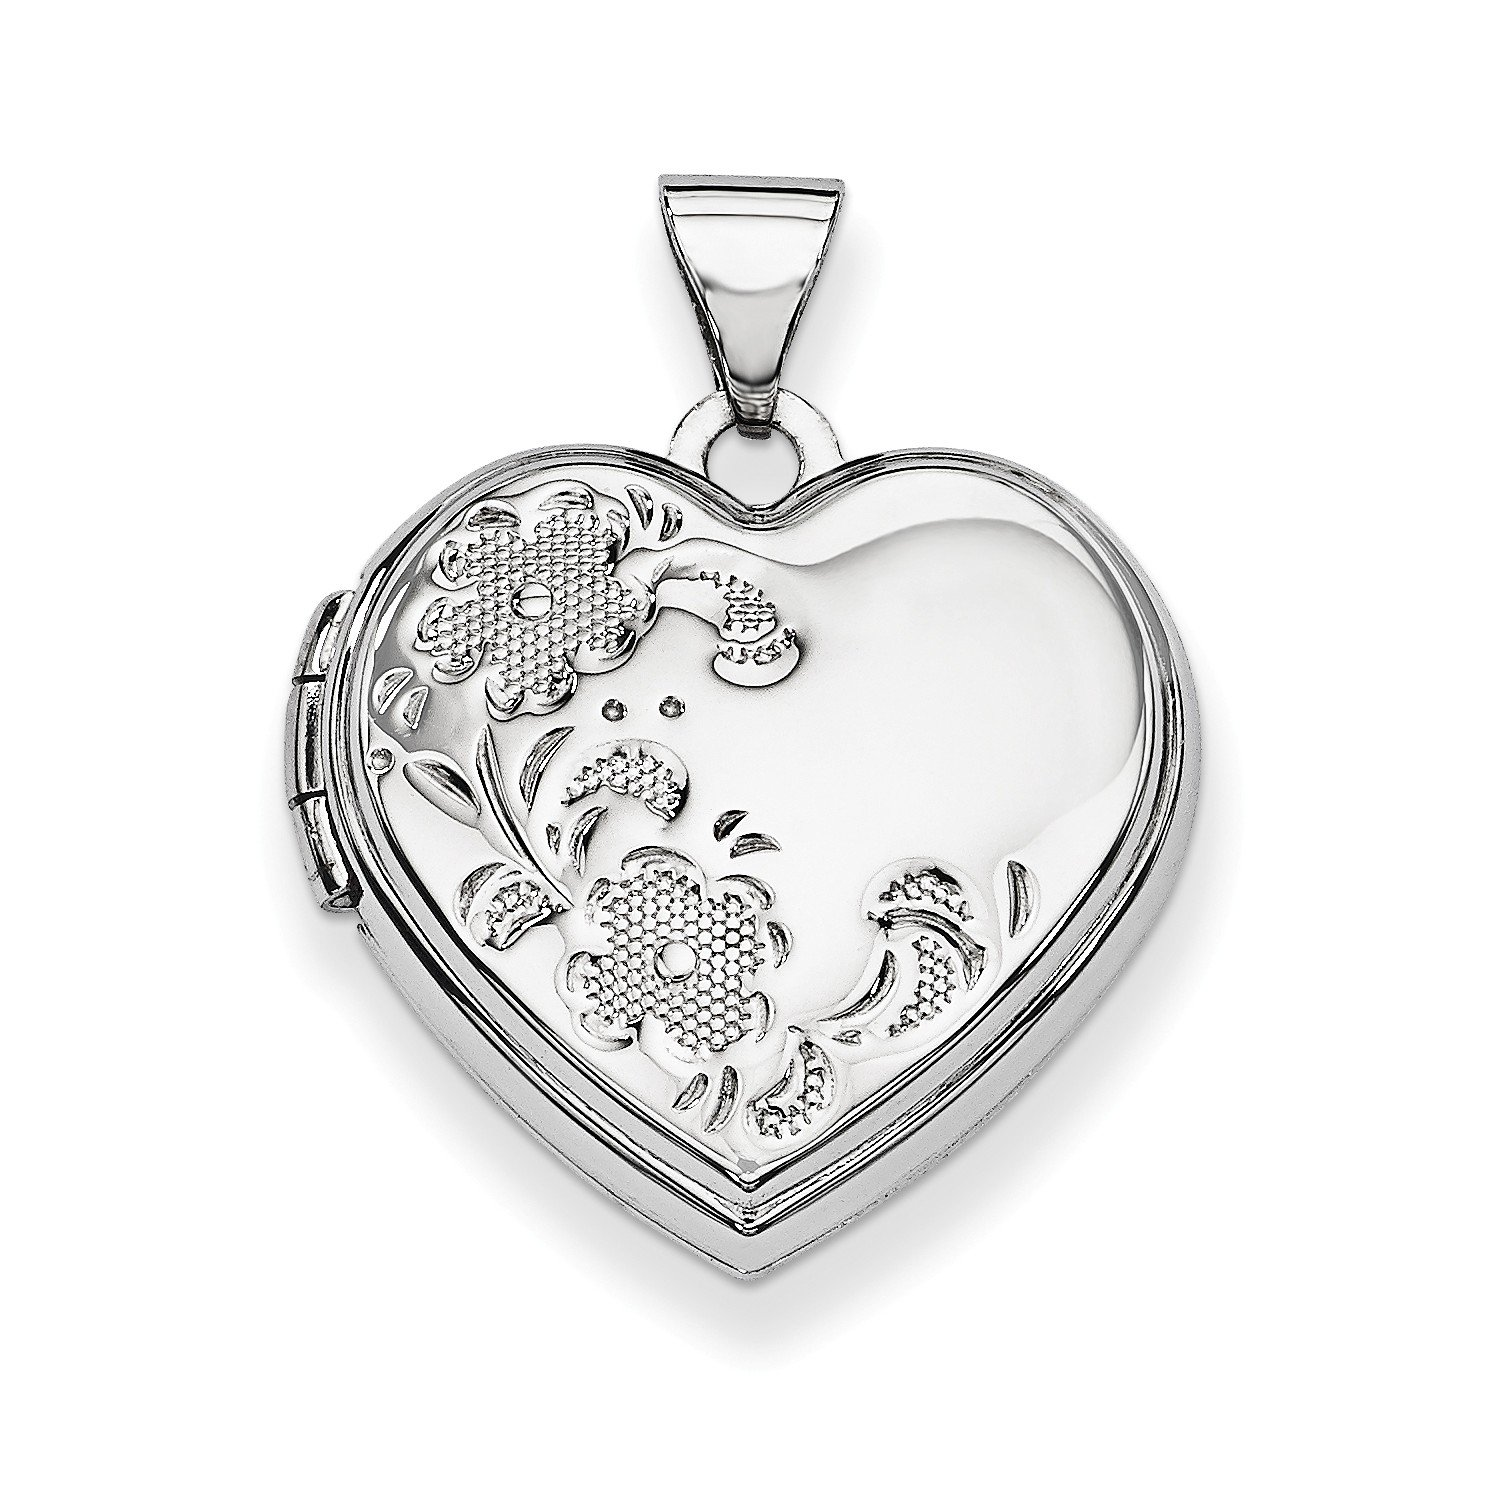 Roy Rose Jewelry 14K White Gold Polished Heart-Shaped Floral Locket 24x19mm